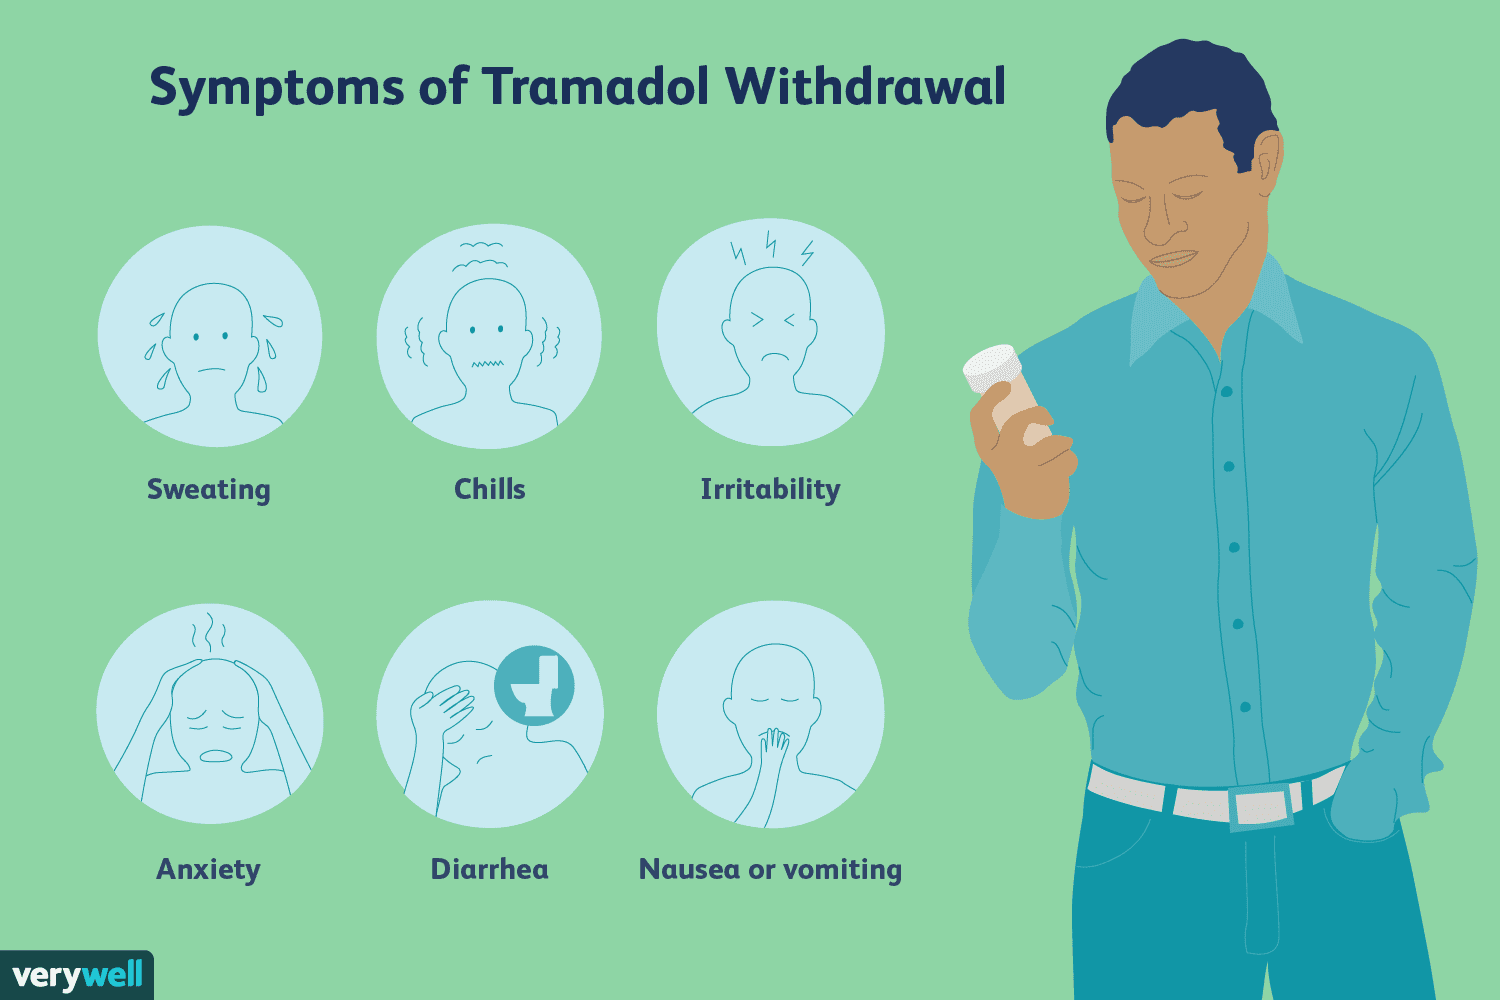 Tramadol Withdrawal: Symptoms, Timeline, and Treatment